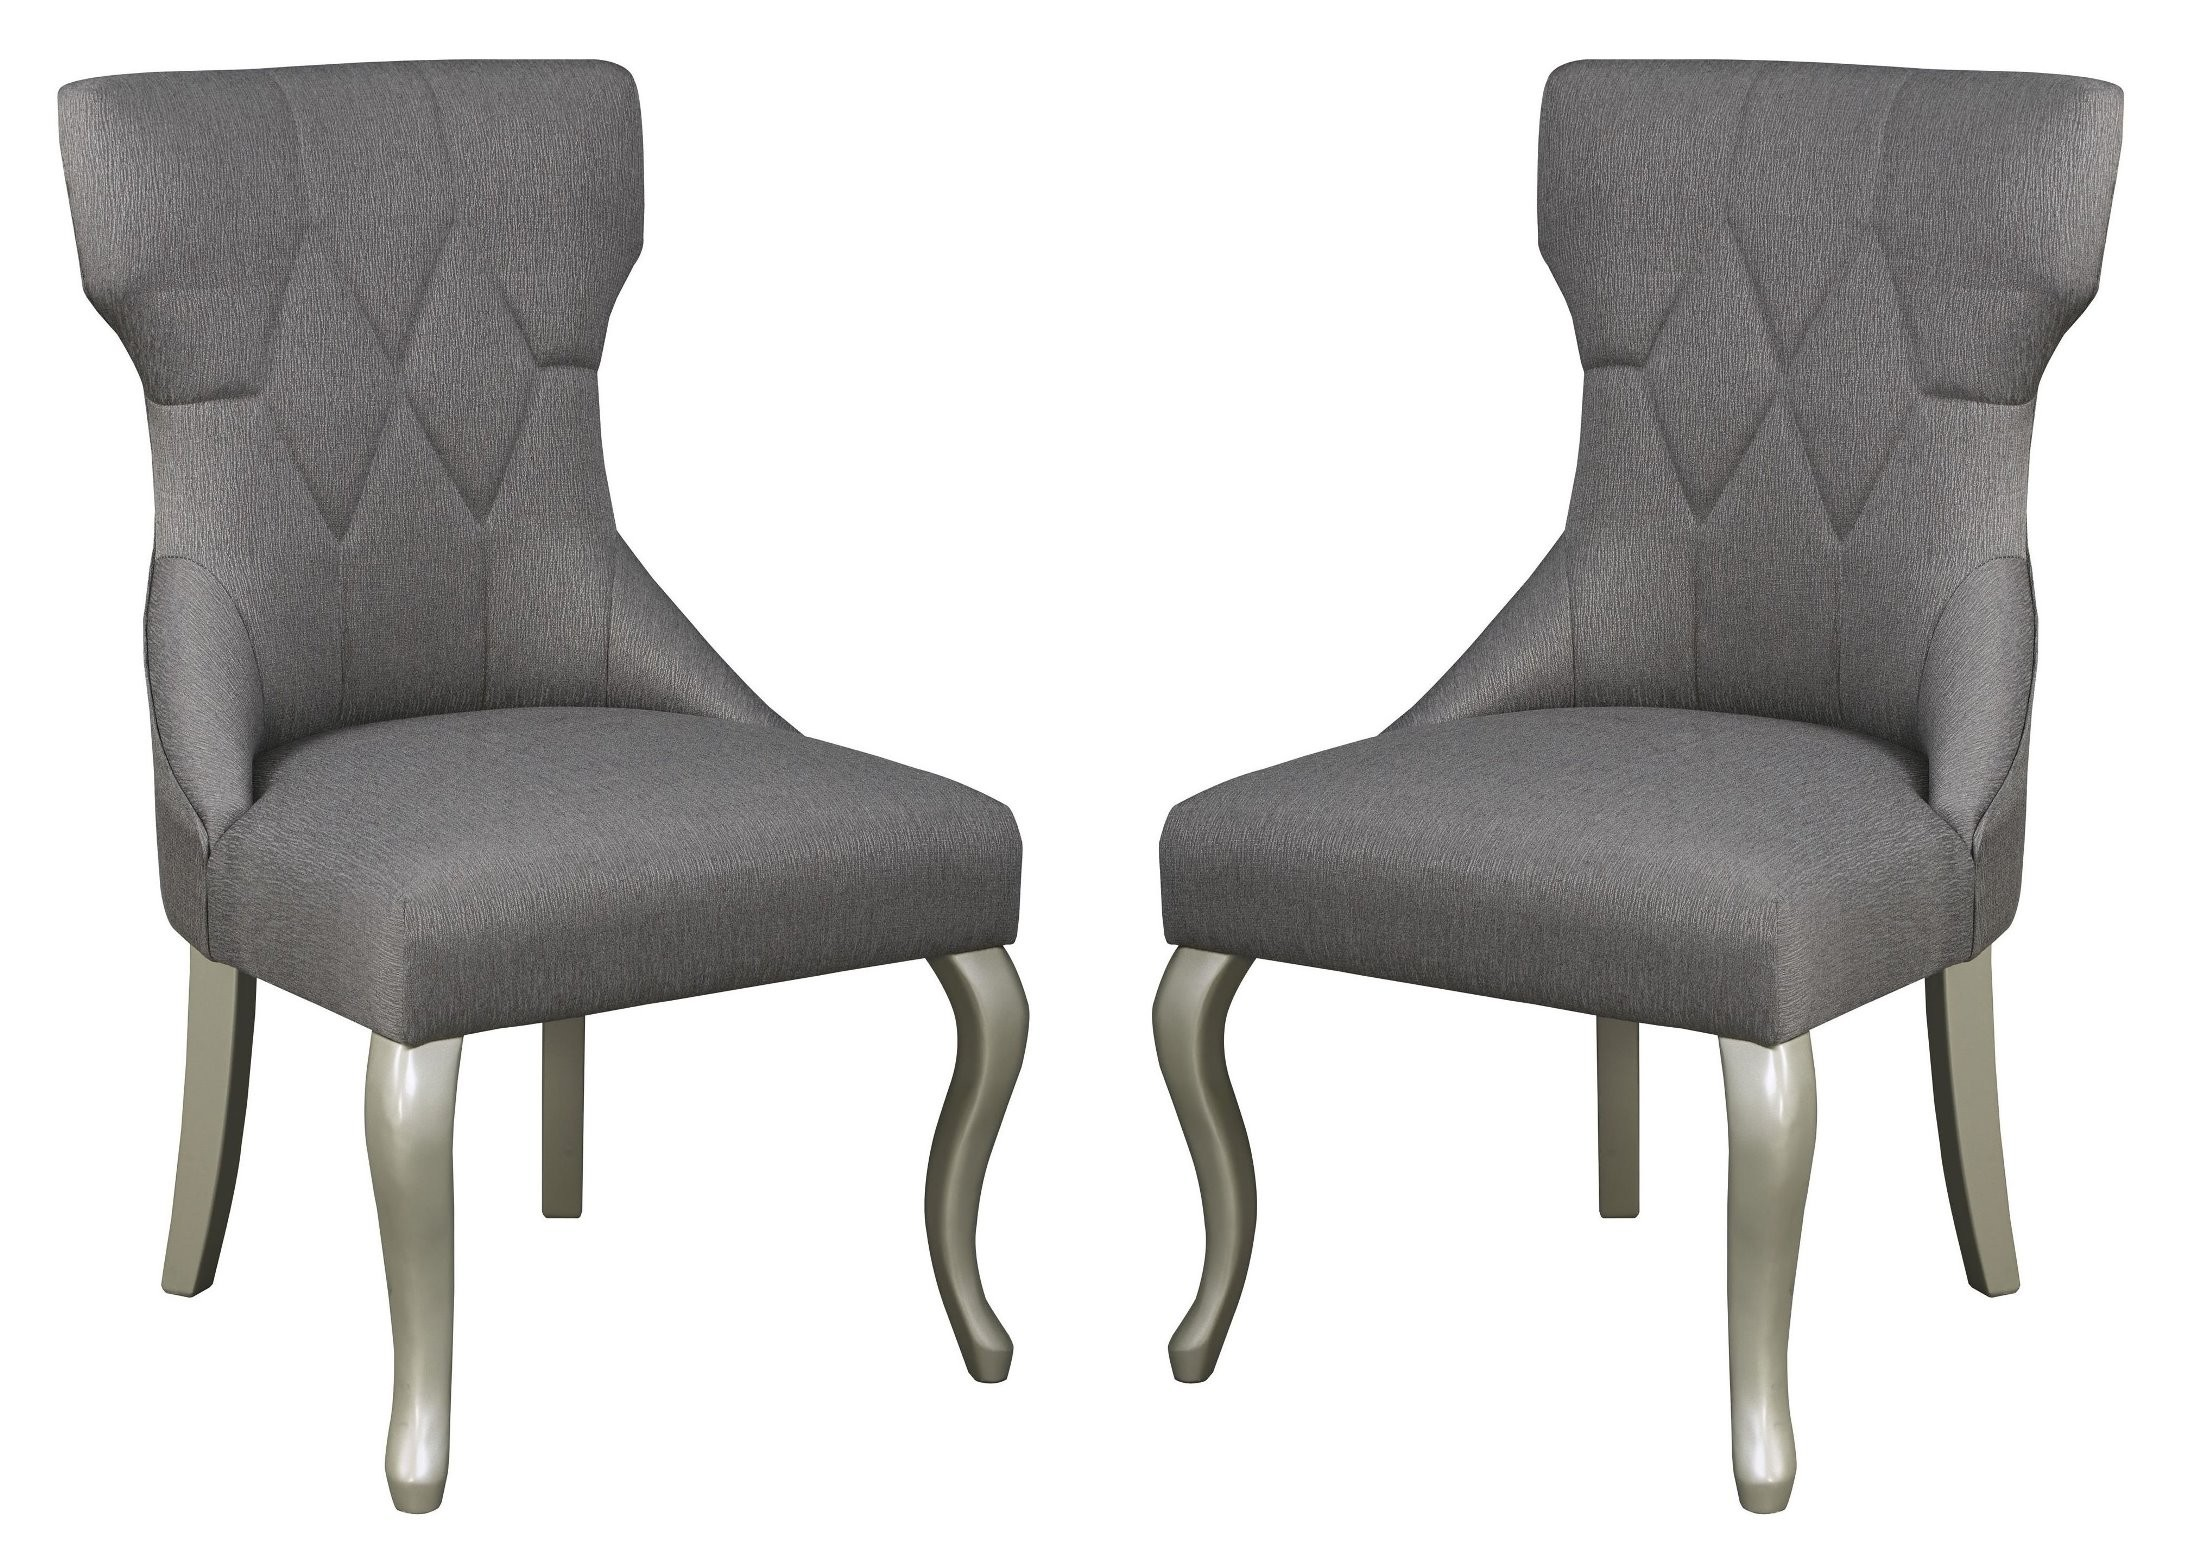 Coralayne Dark Gray Dining Upholstered Side Chair Set 2 from